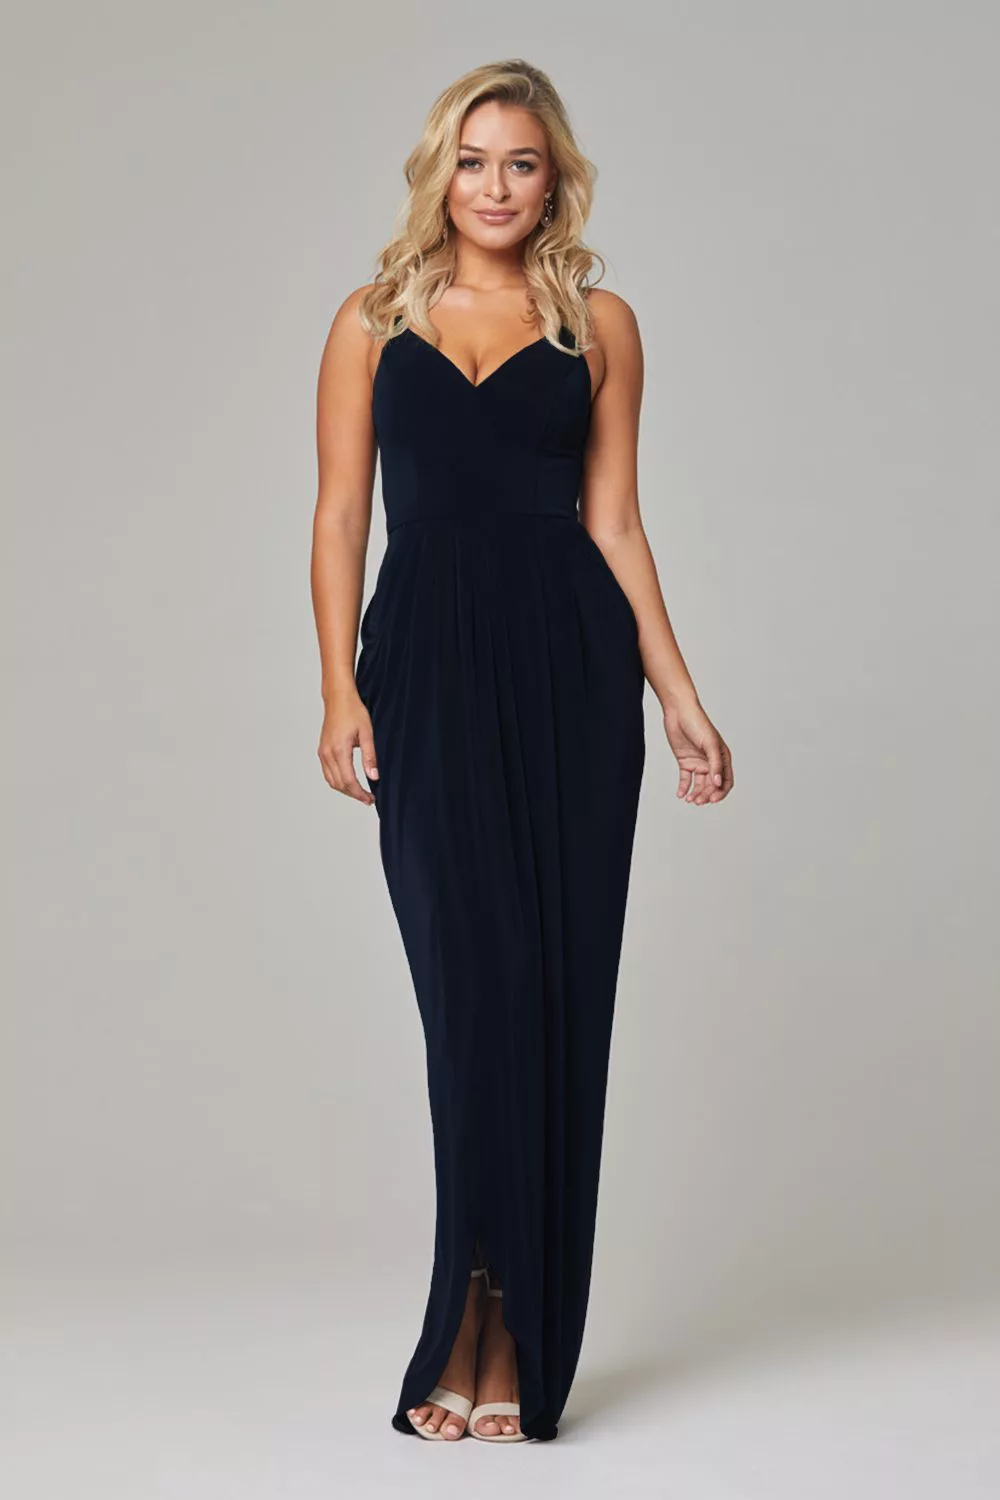 Claire Bridesmaids Dress by Tania Olsen - Navy